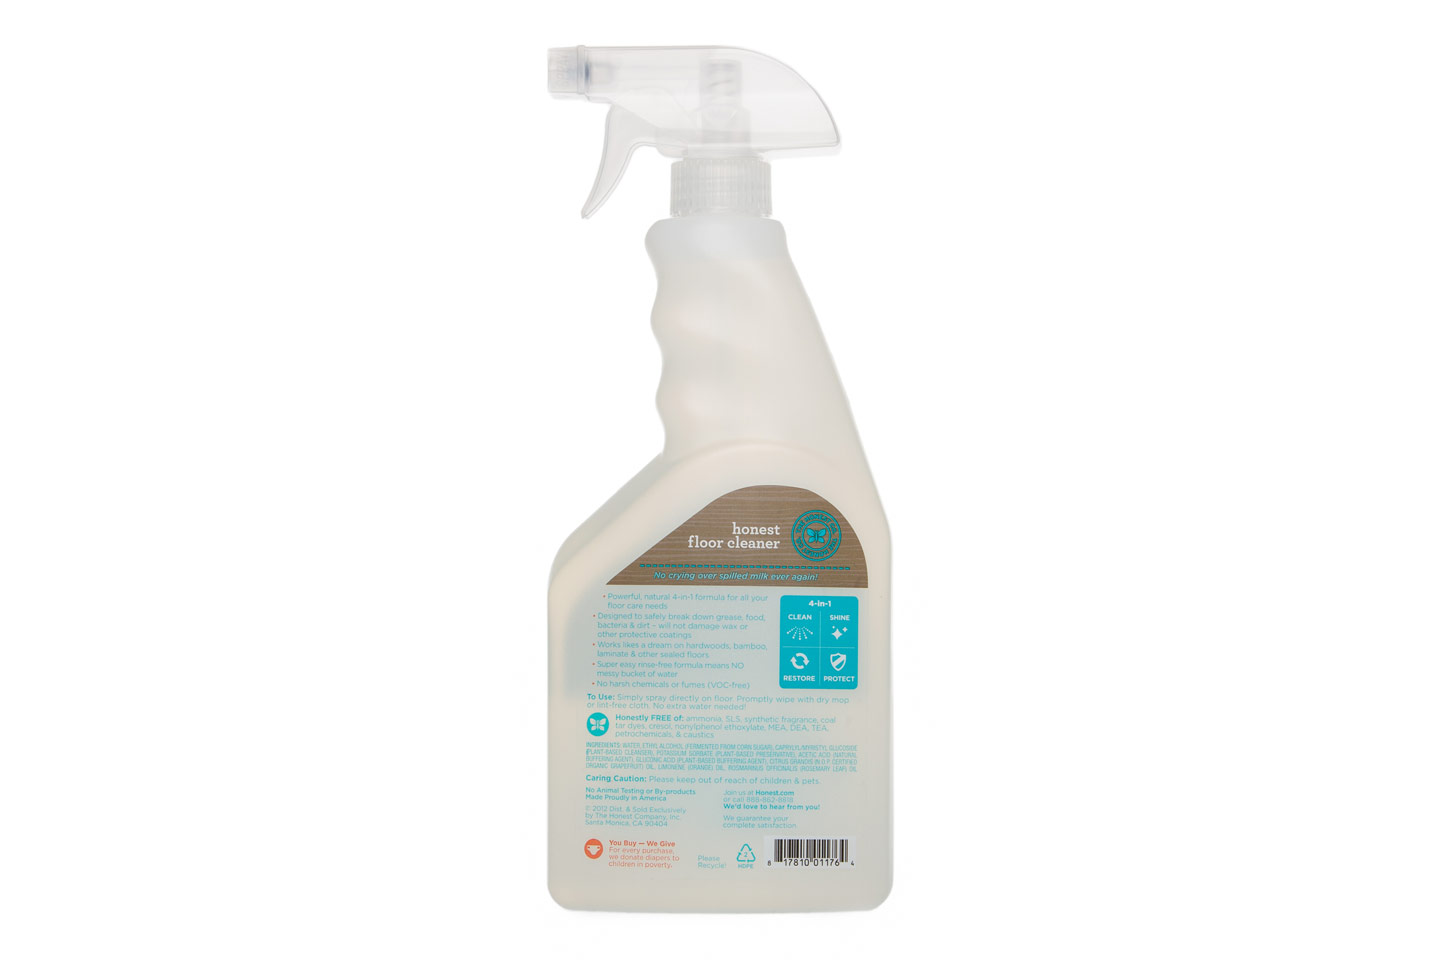 The Honest Company Floor Cleaner